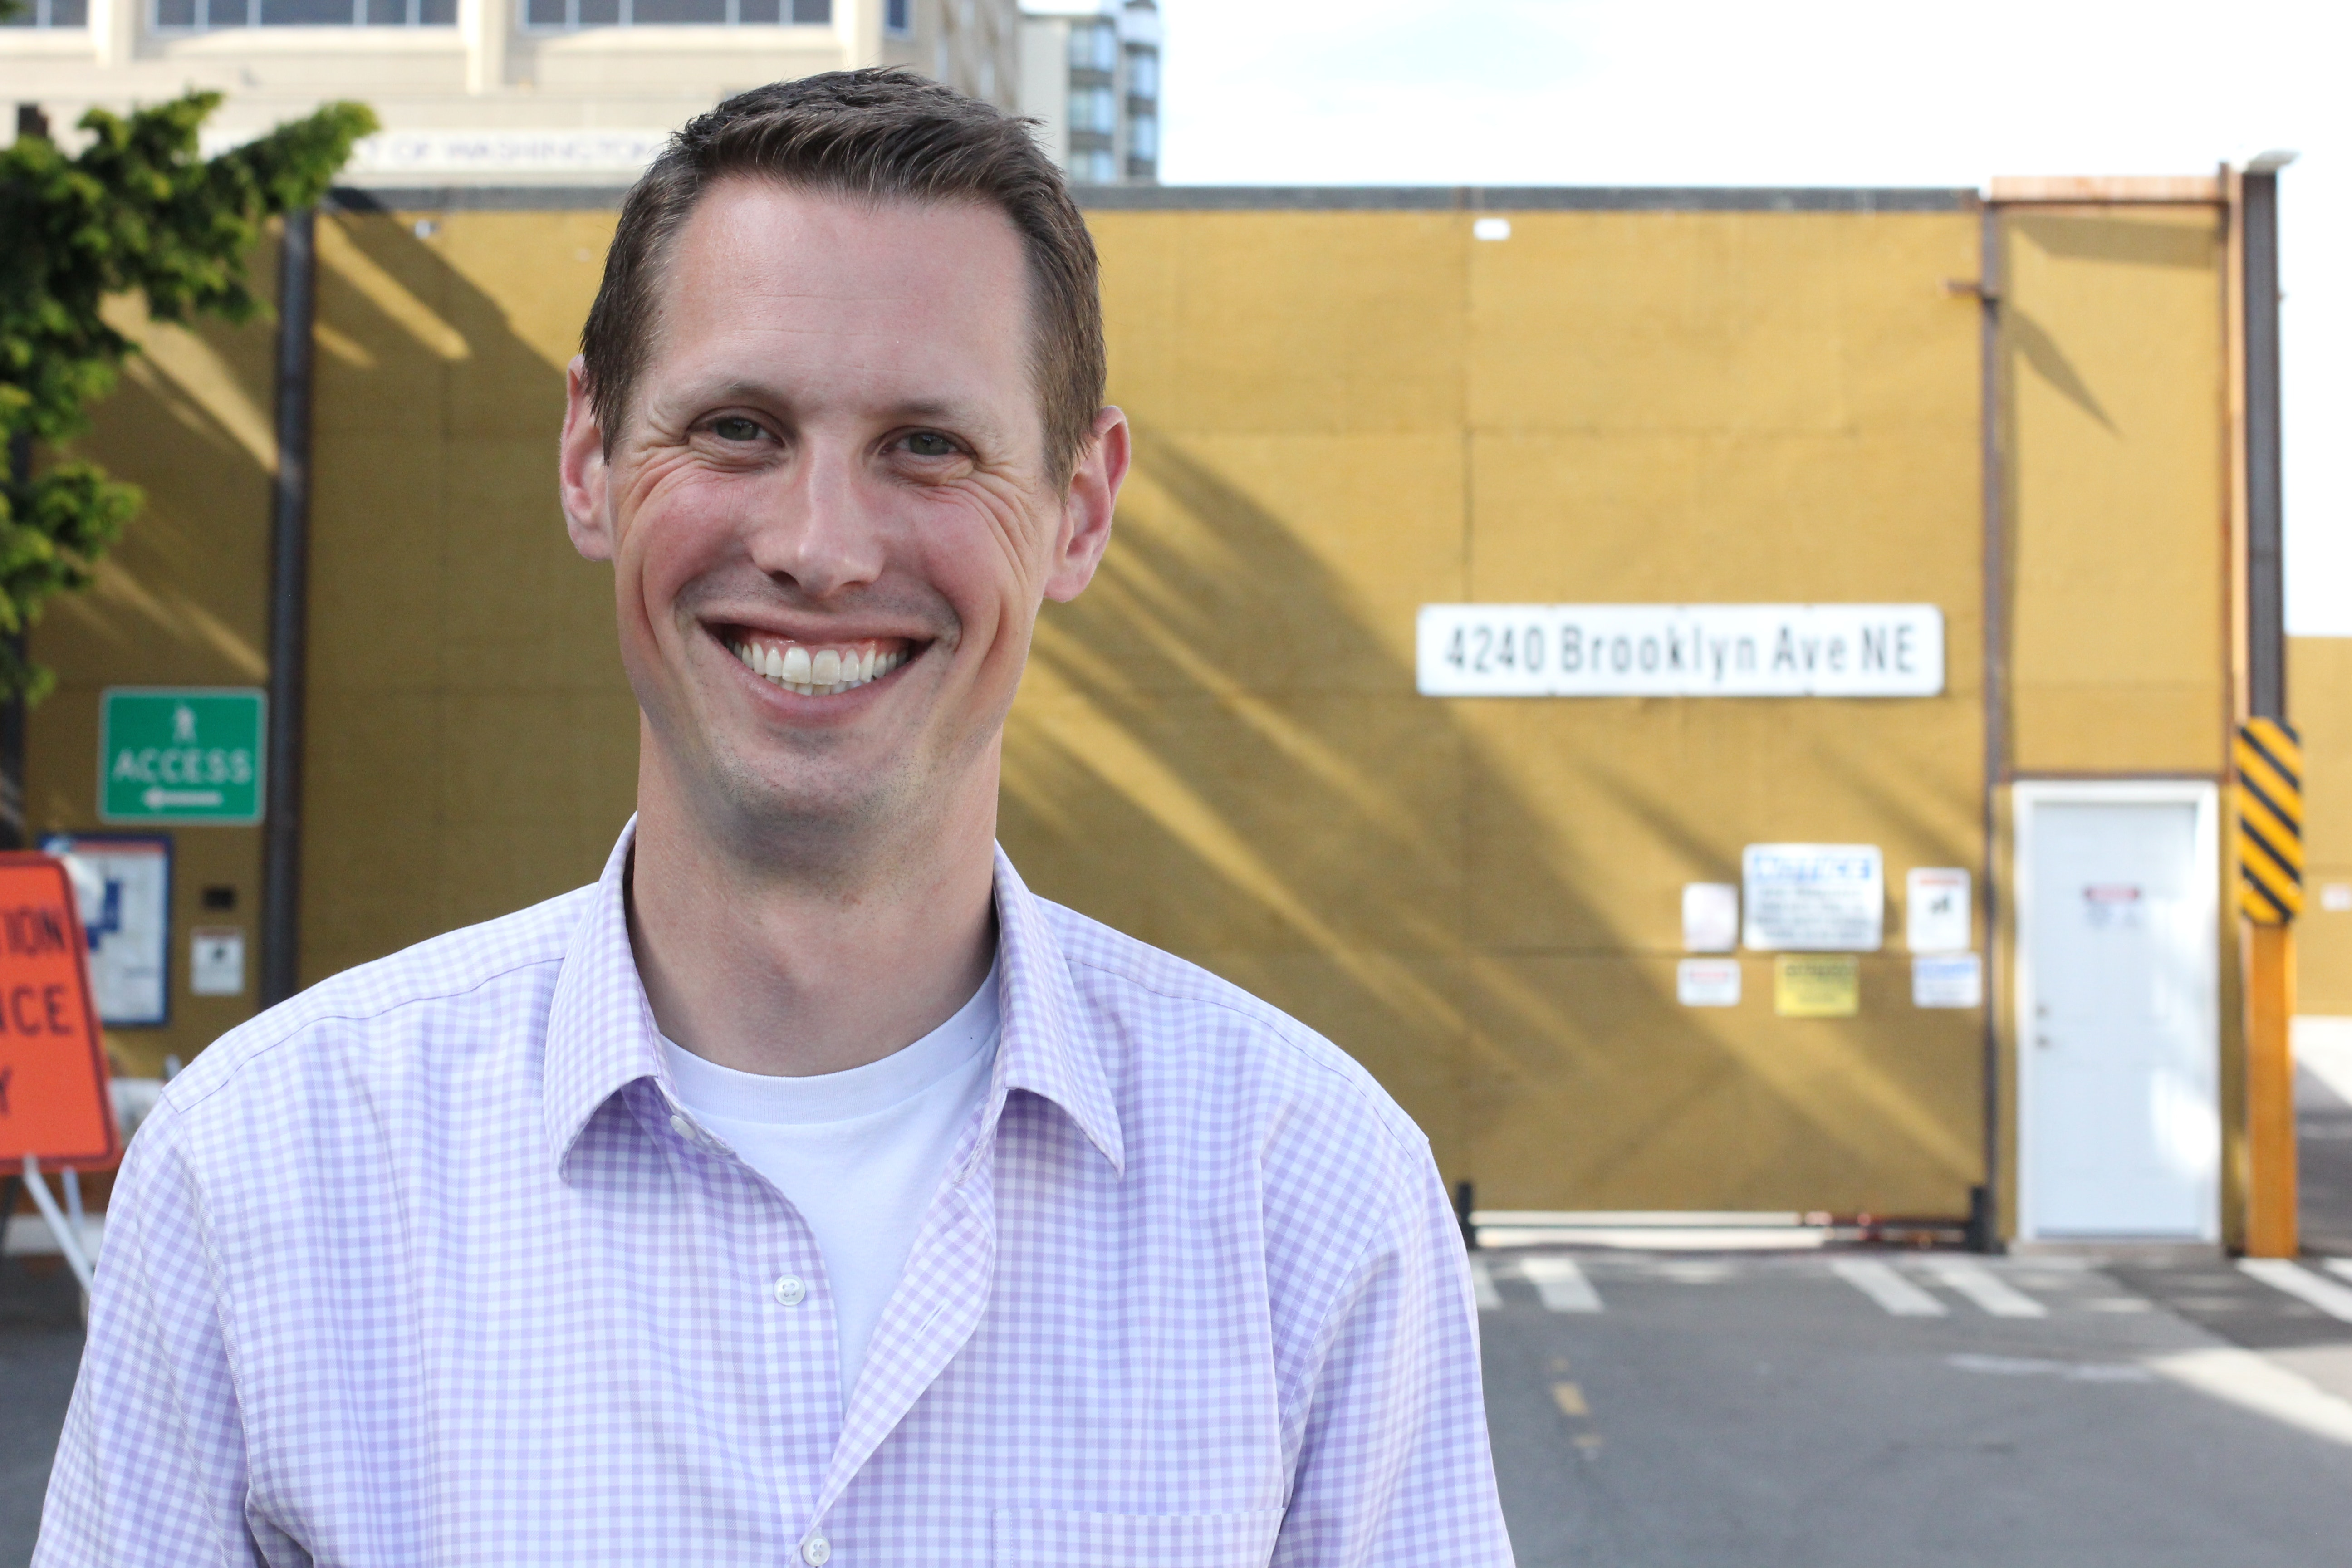 Housing is most urgent question for Seattle council candidates looking to fill vacant seat